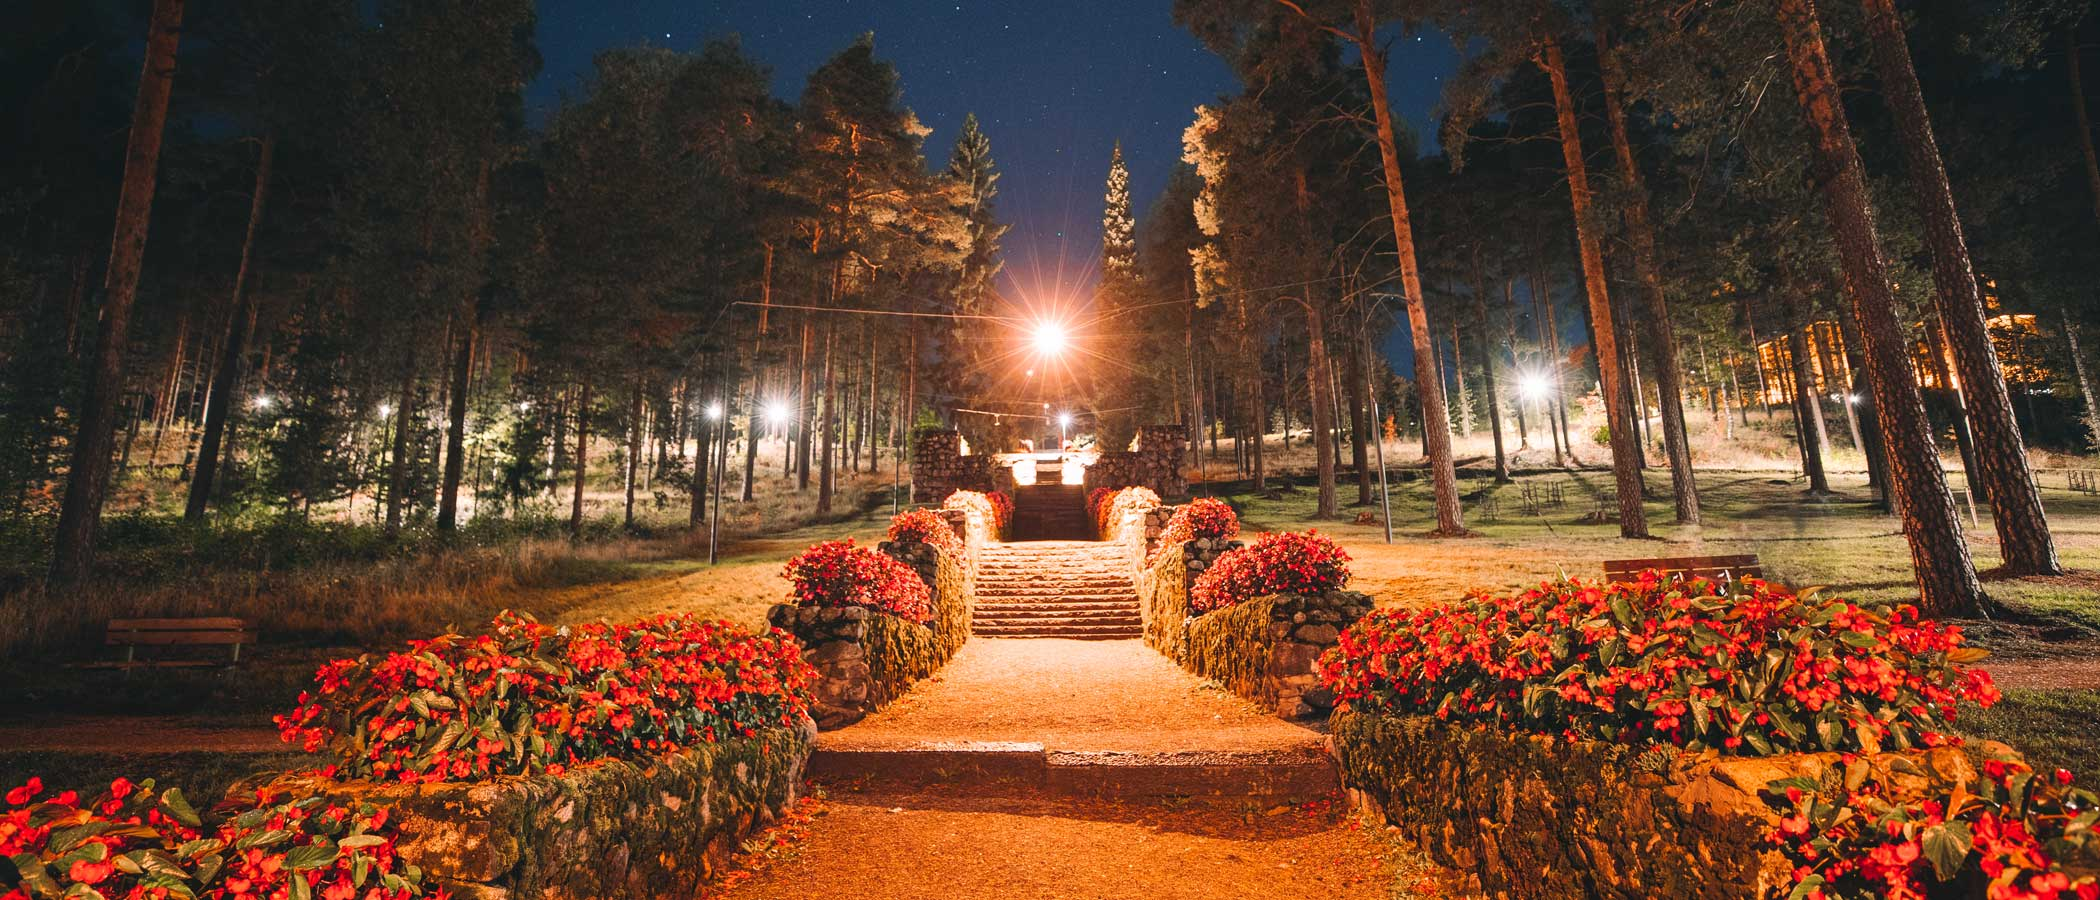 The Harju Stairs in evening lighting